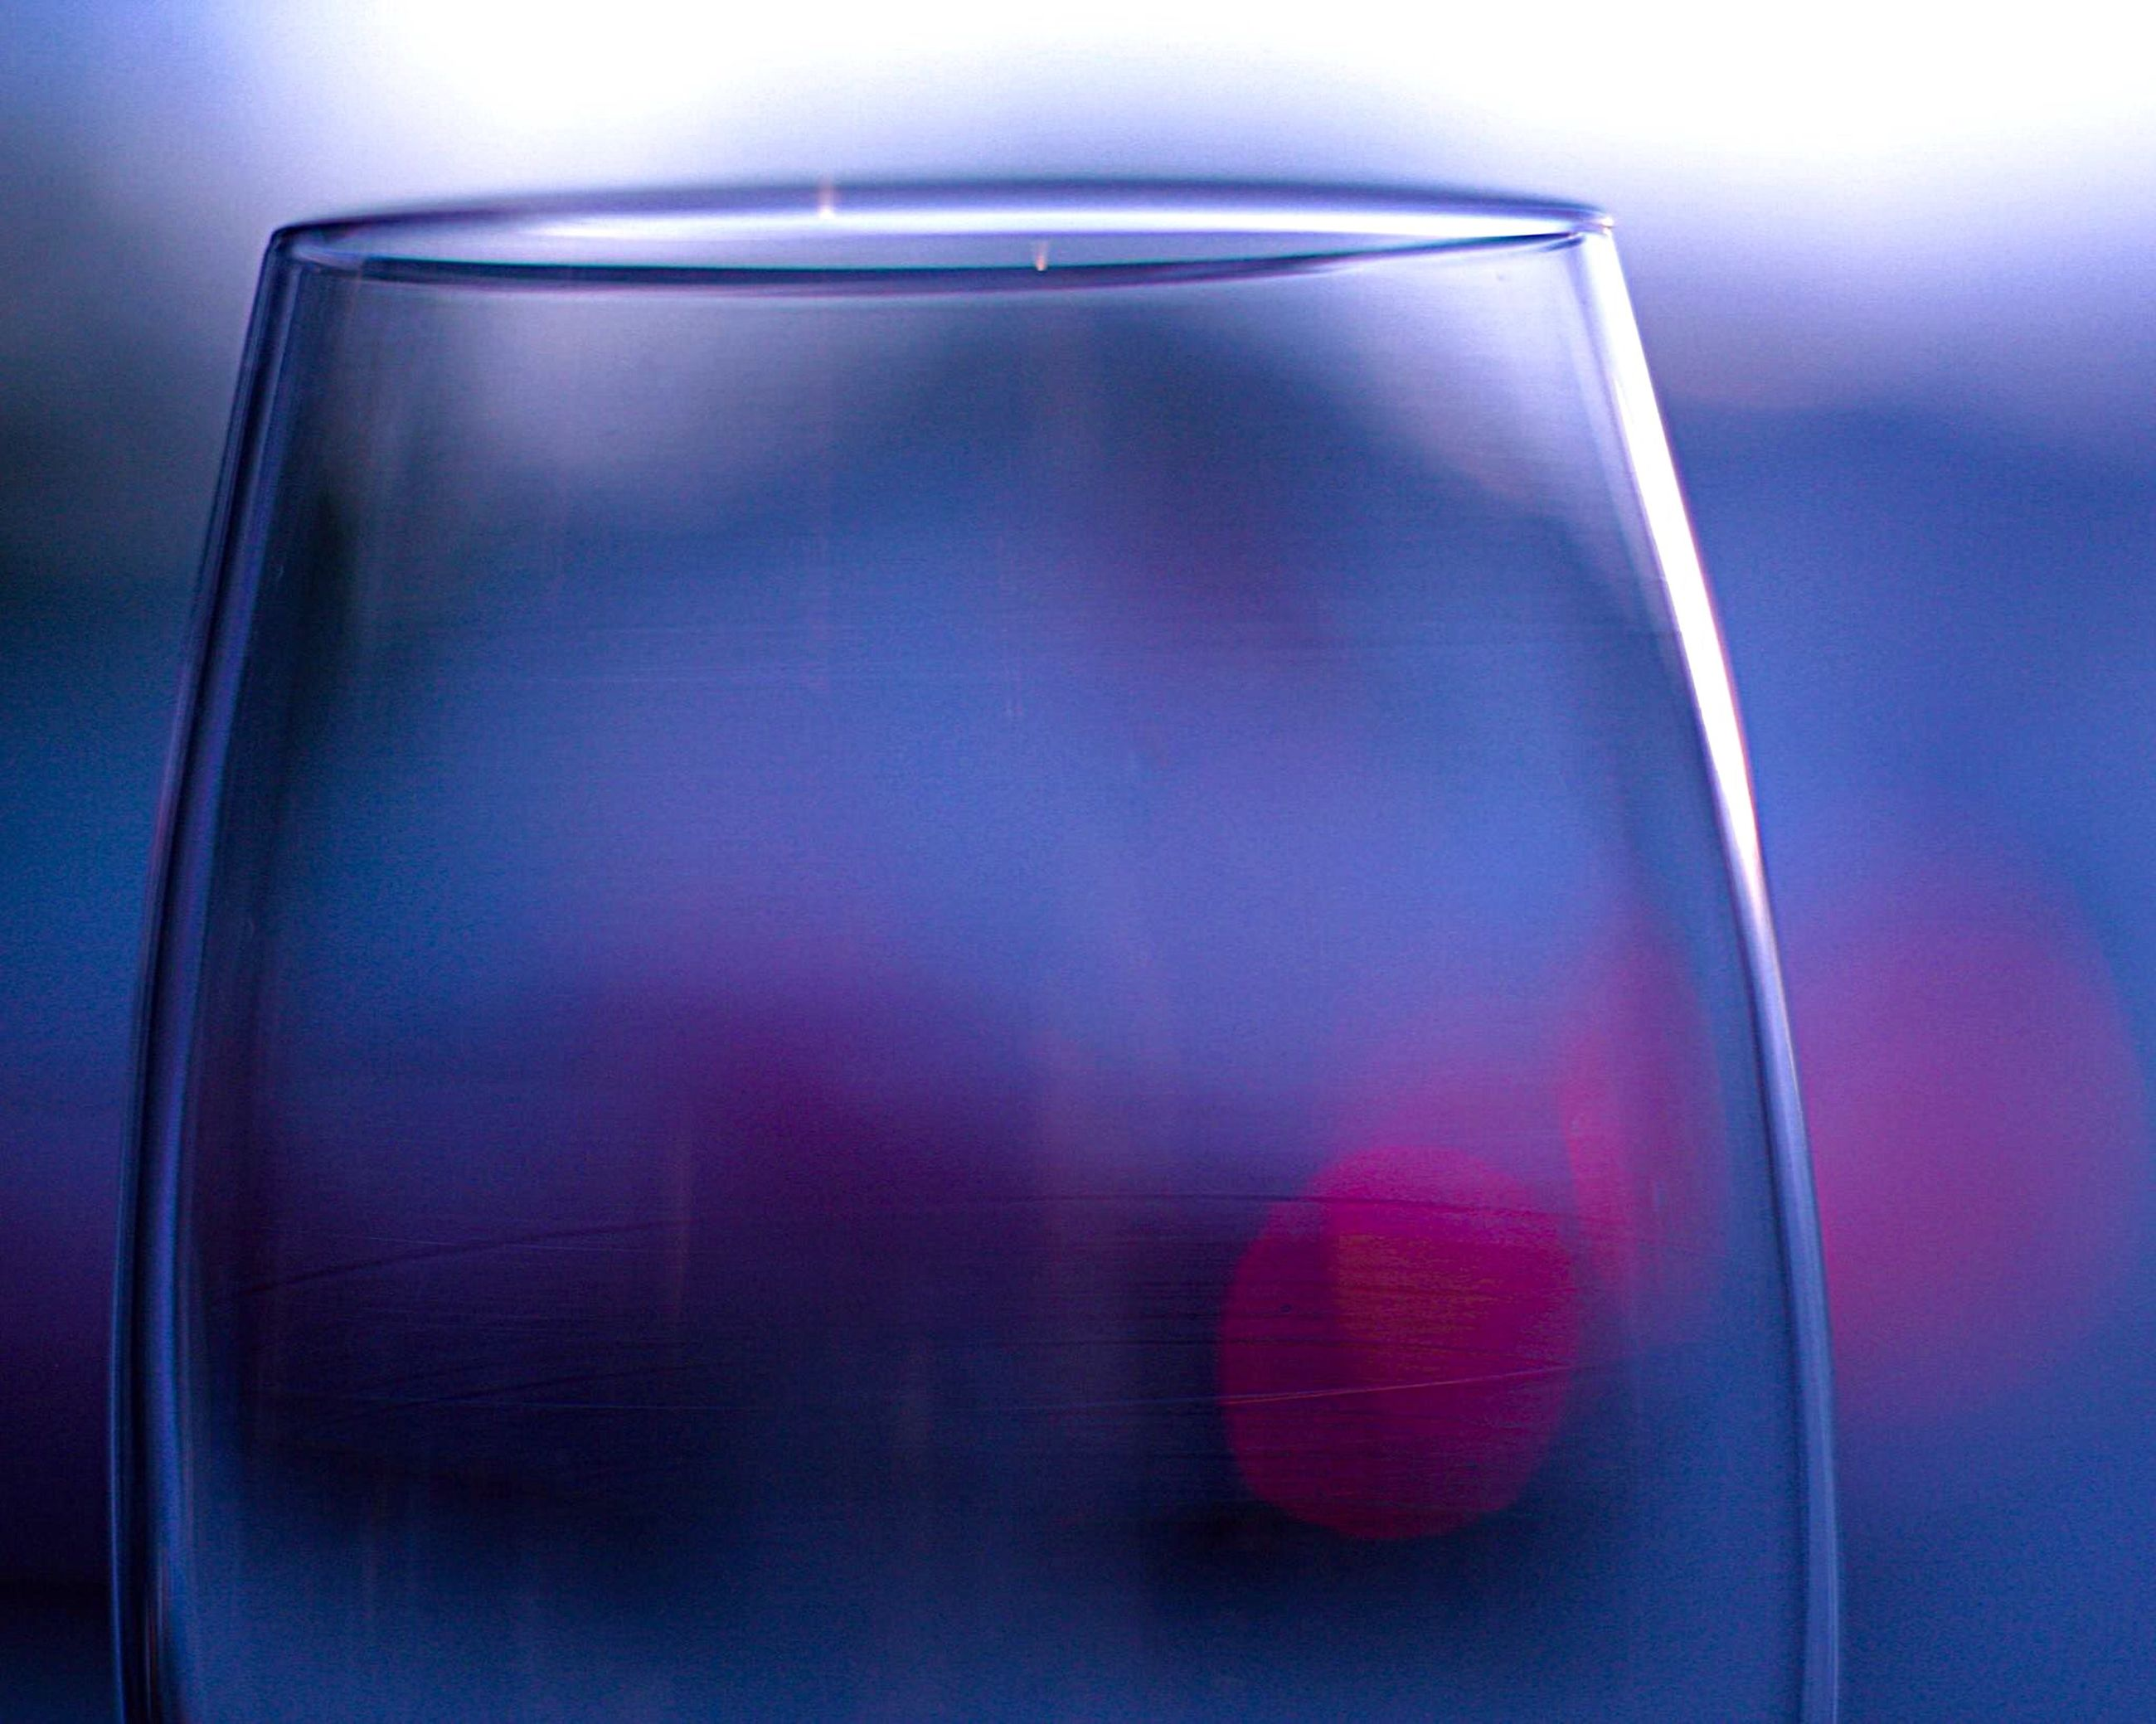 indoors, still life, close-up, glass - material, drink, transparent, food and drink, refreshment, table, drinking glass, glass, freshness, no people, single object, studio shot, reflection, focus on foreground, simplicity, red, white background